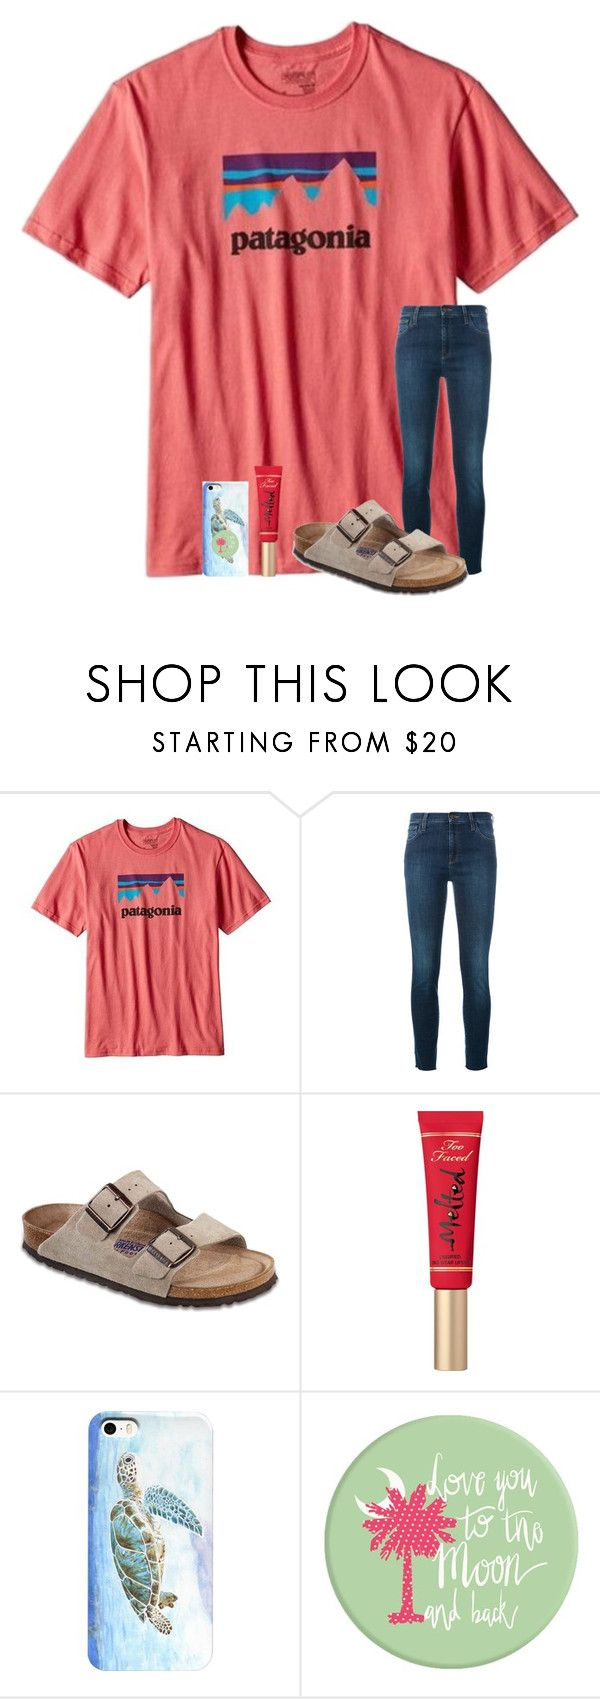 """""""ABC tag"""" by kristie-thompson78 ❤ liked on Polyvore featuring Patagonia, Gucci, Birkenstock and Too Faced Cosmetics"""